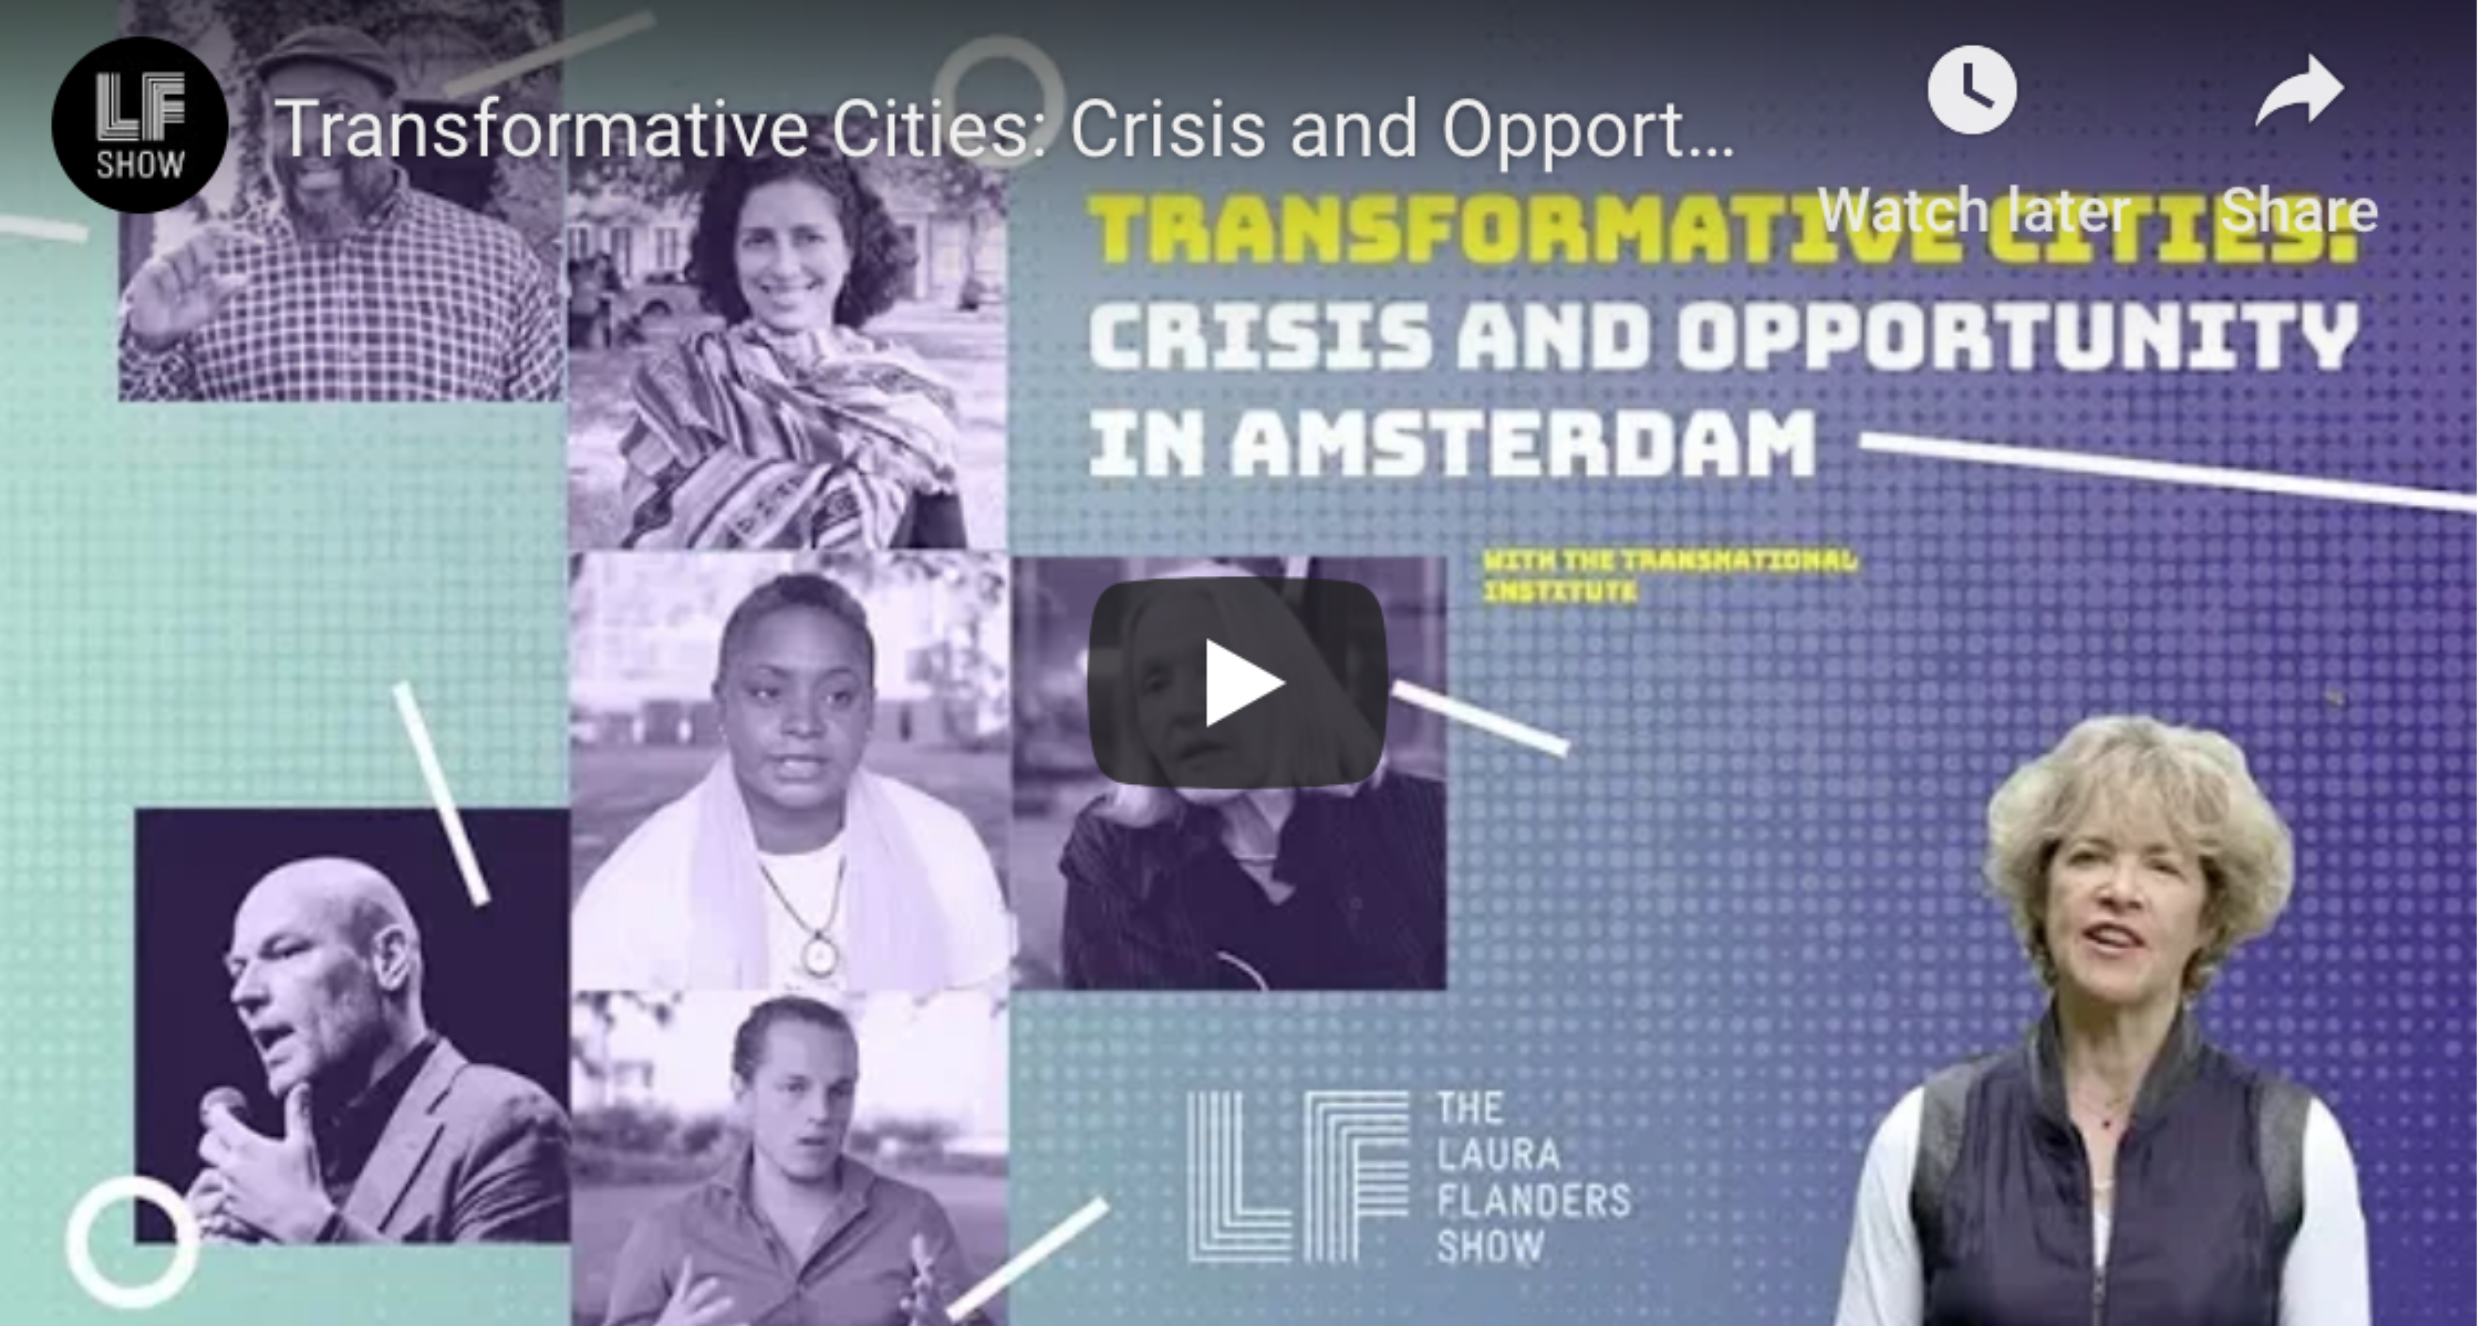 Laura Flanders Show: Transformative Cities – Crisis and Opportunity in Amsterdam